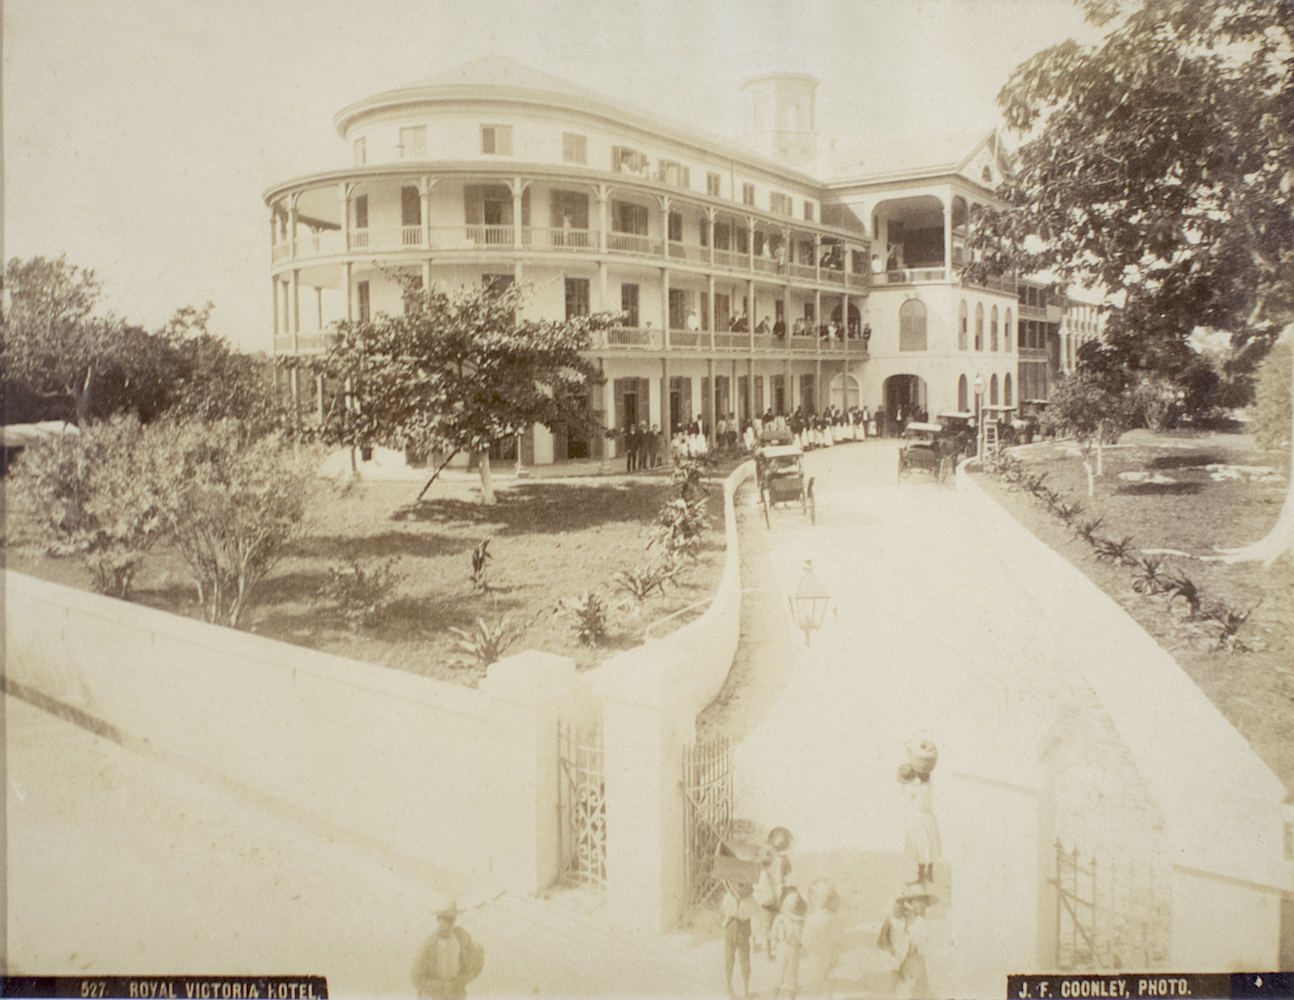 """""""Royal Victoria Hotel"""" (c 1857 - 1904). Jacob Frank Coonley, albumen print, 7 x 8. Image courtesy of the National Collection."""